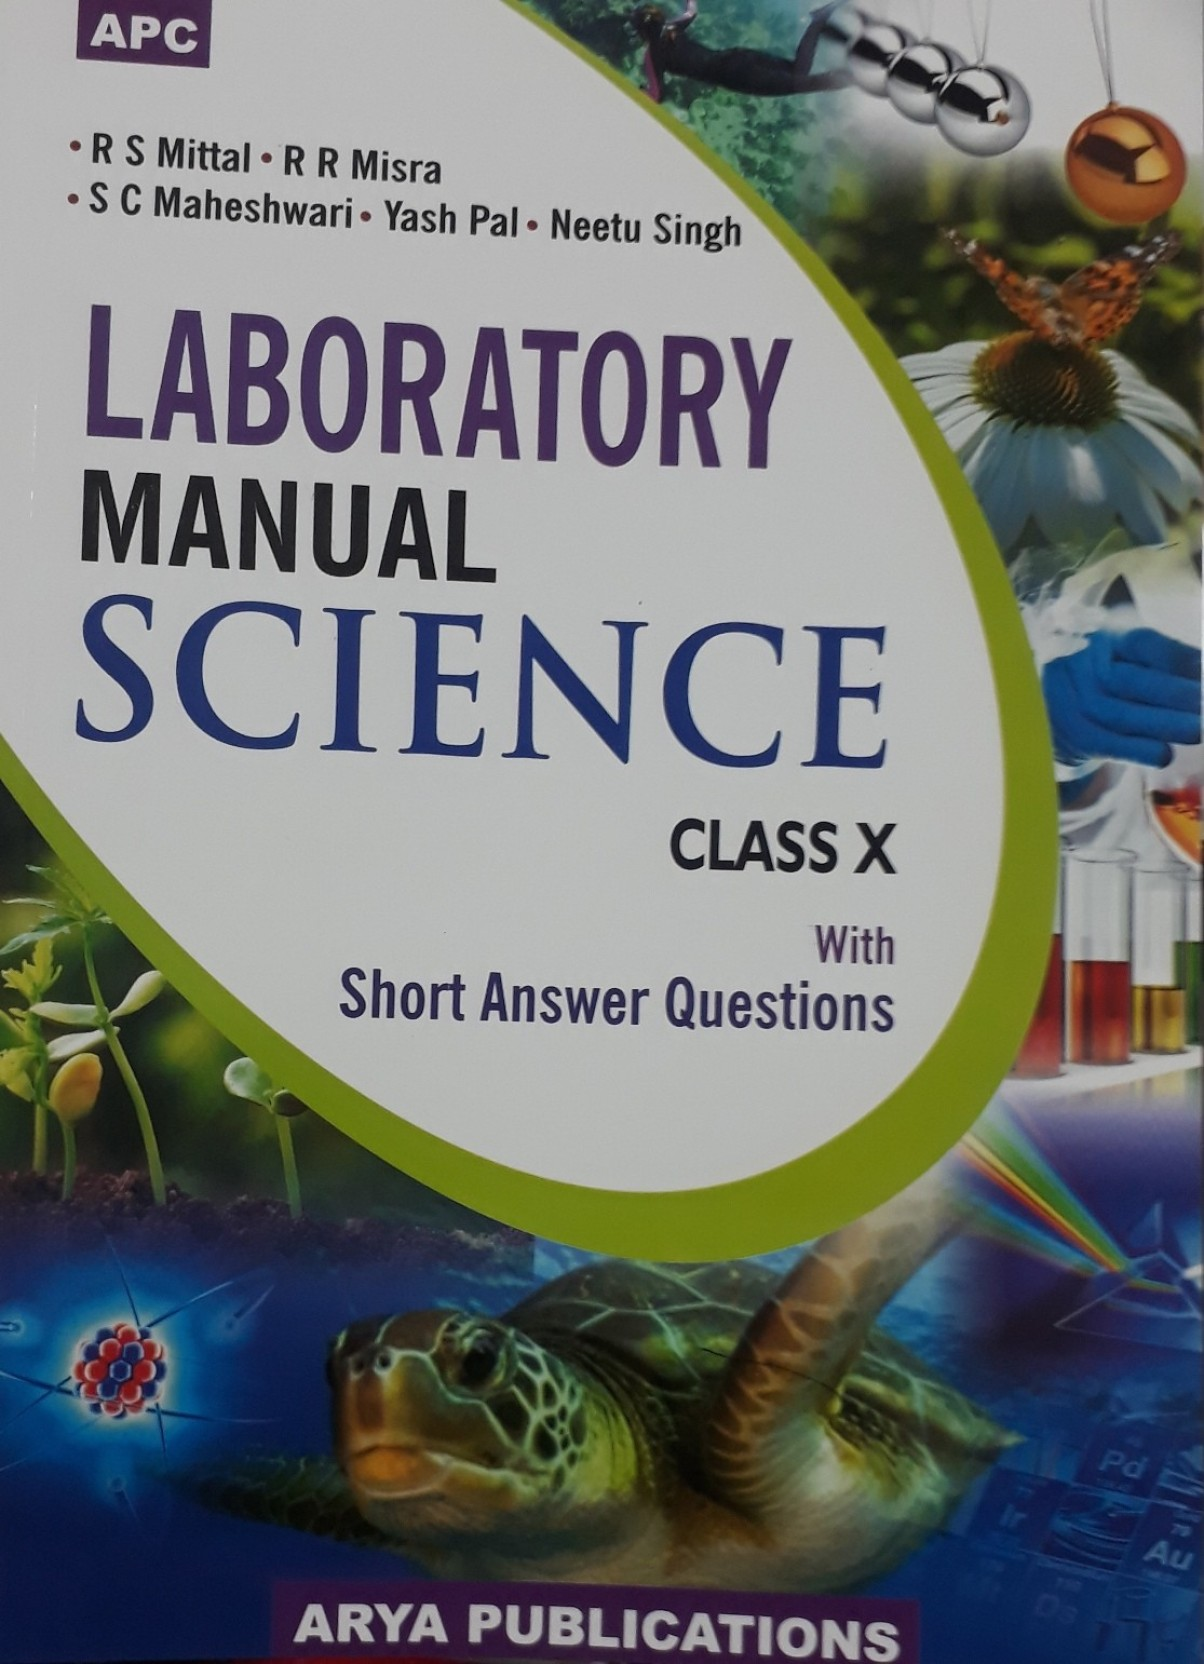 LABORATORY MANUAL SCIENCE CLASS X. ADD TO CART